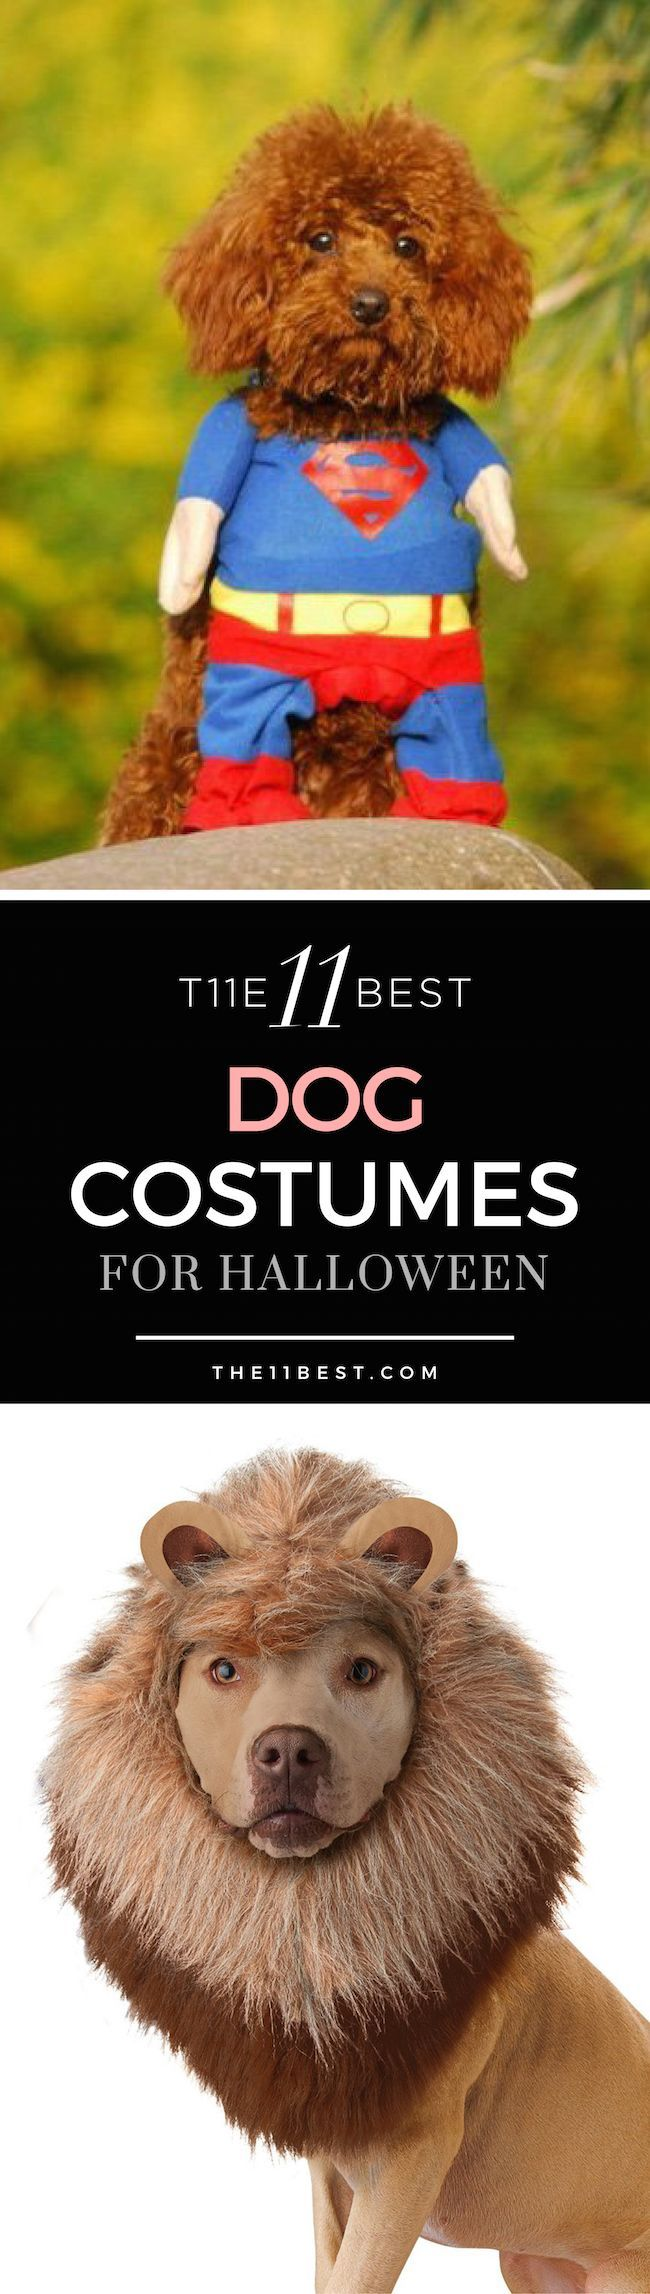 These Halloween dog costumes just need to happen!: